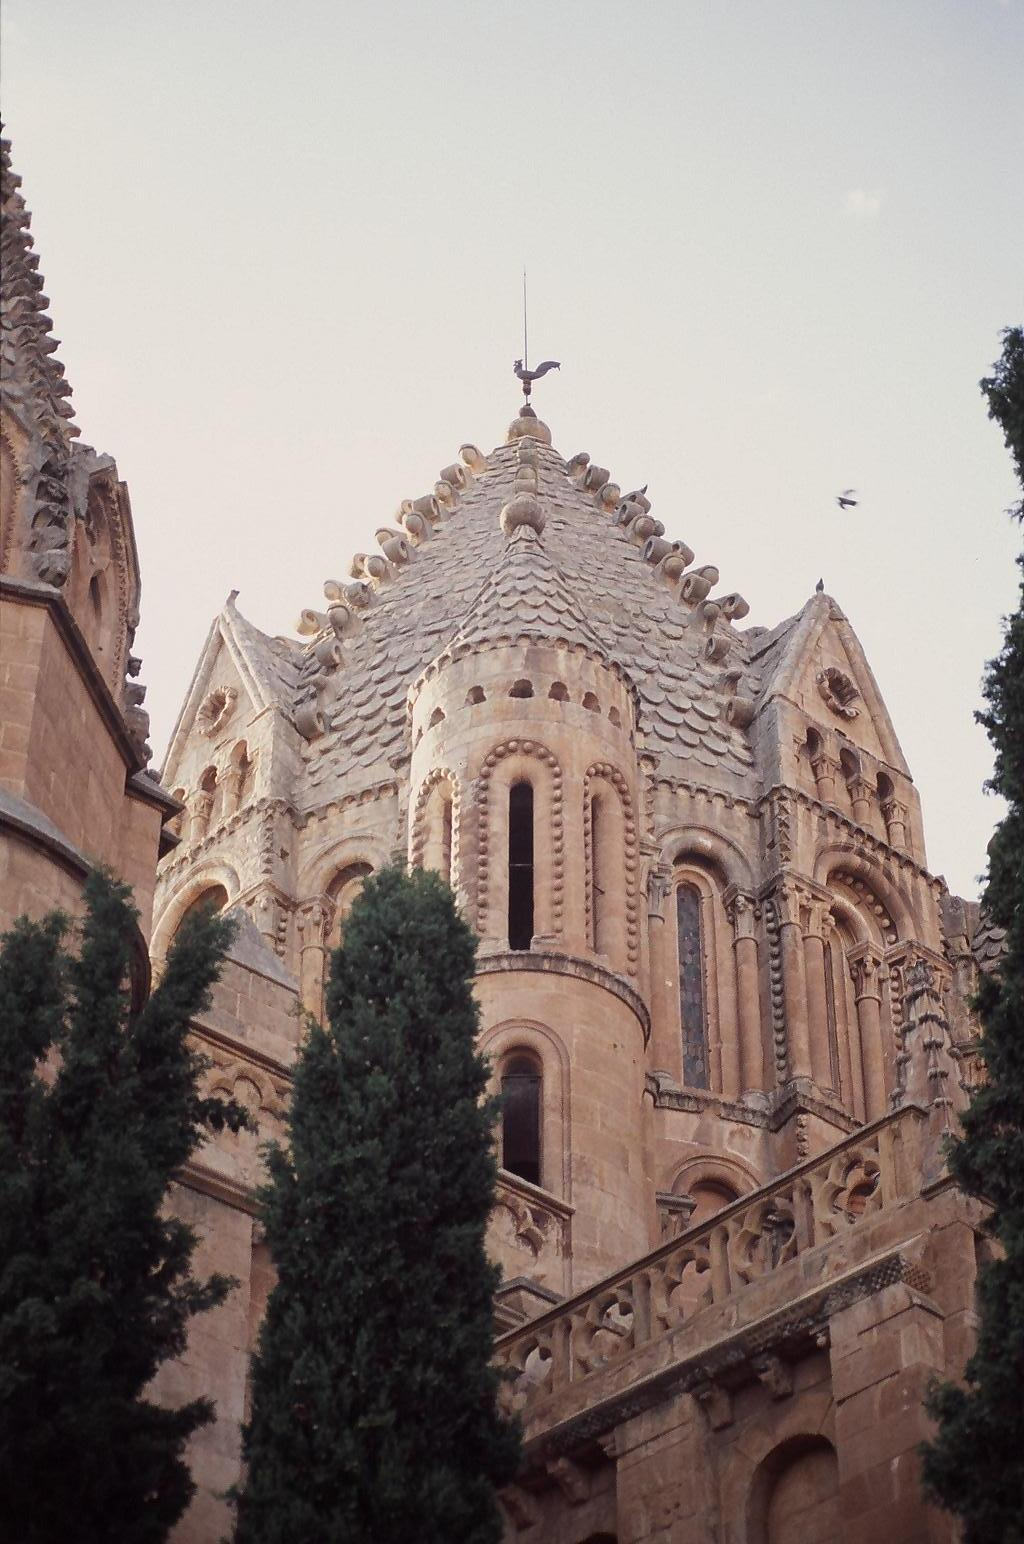 File:Catedral Vieja.jpg - Wikimedia Commons